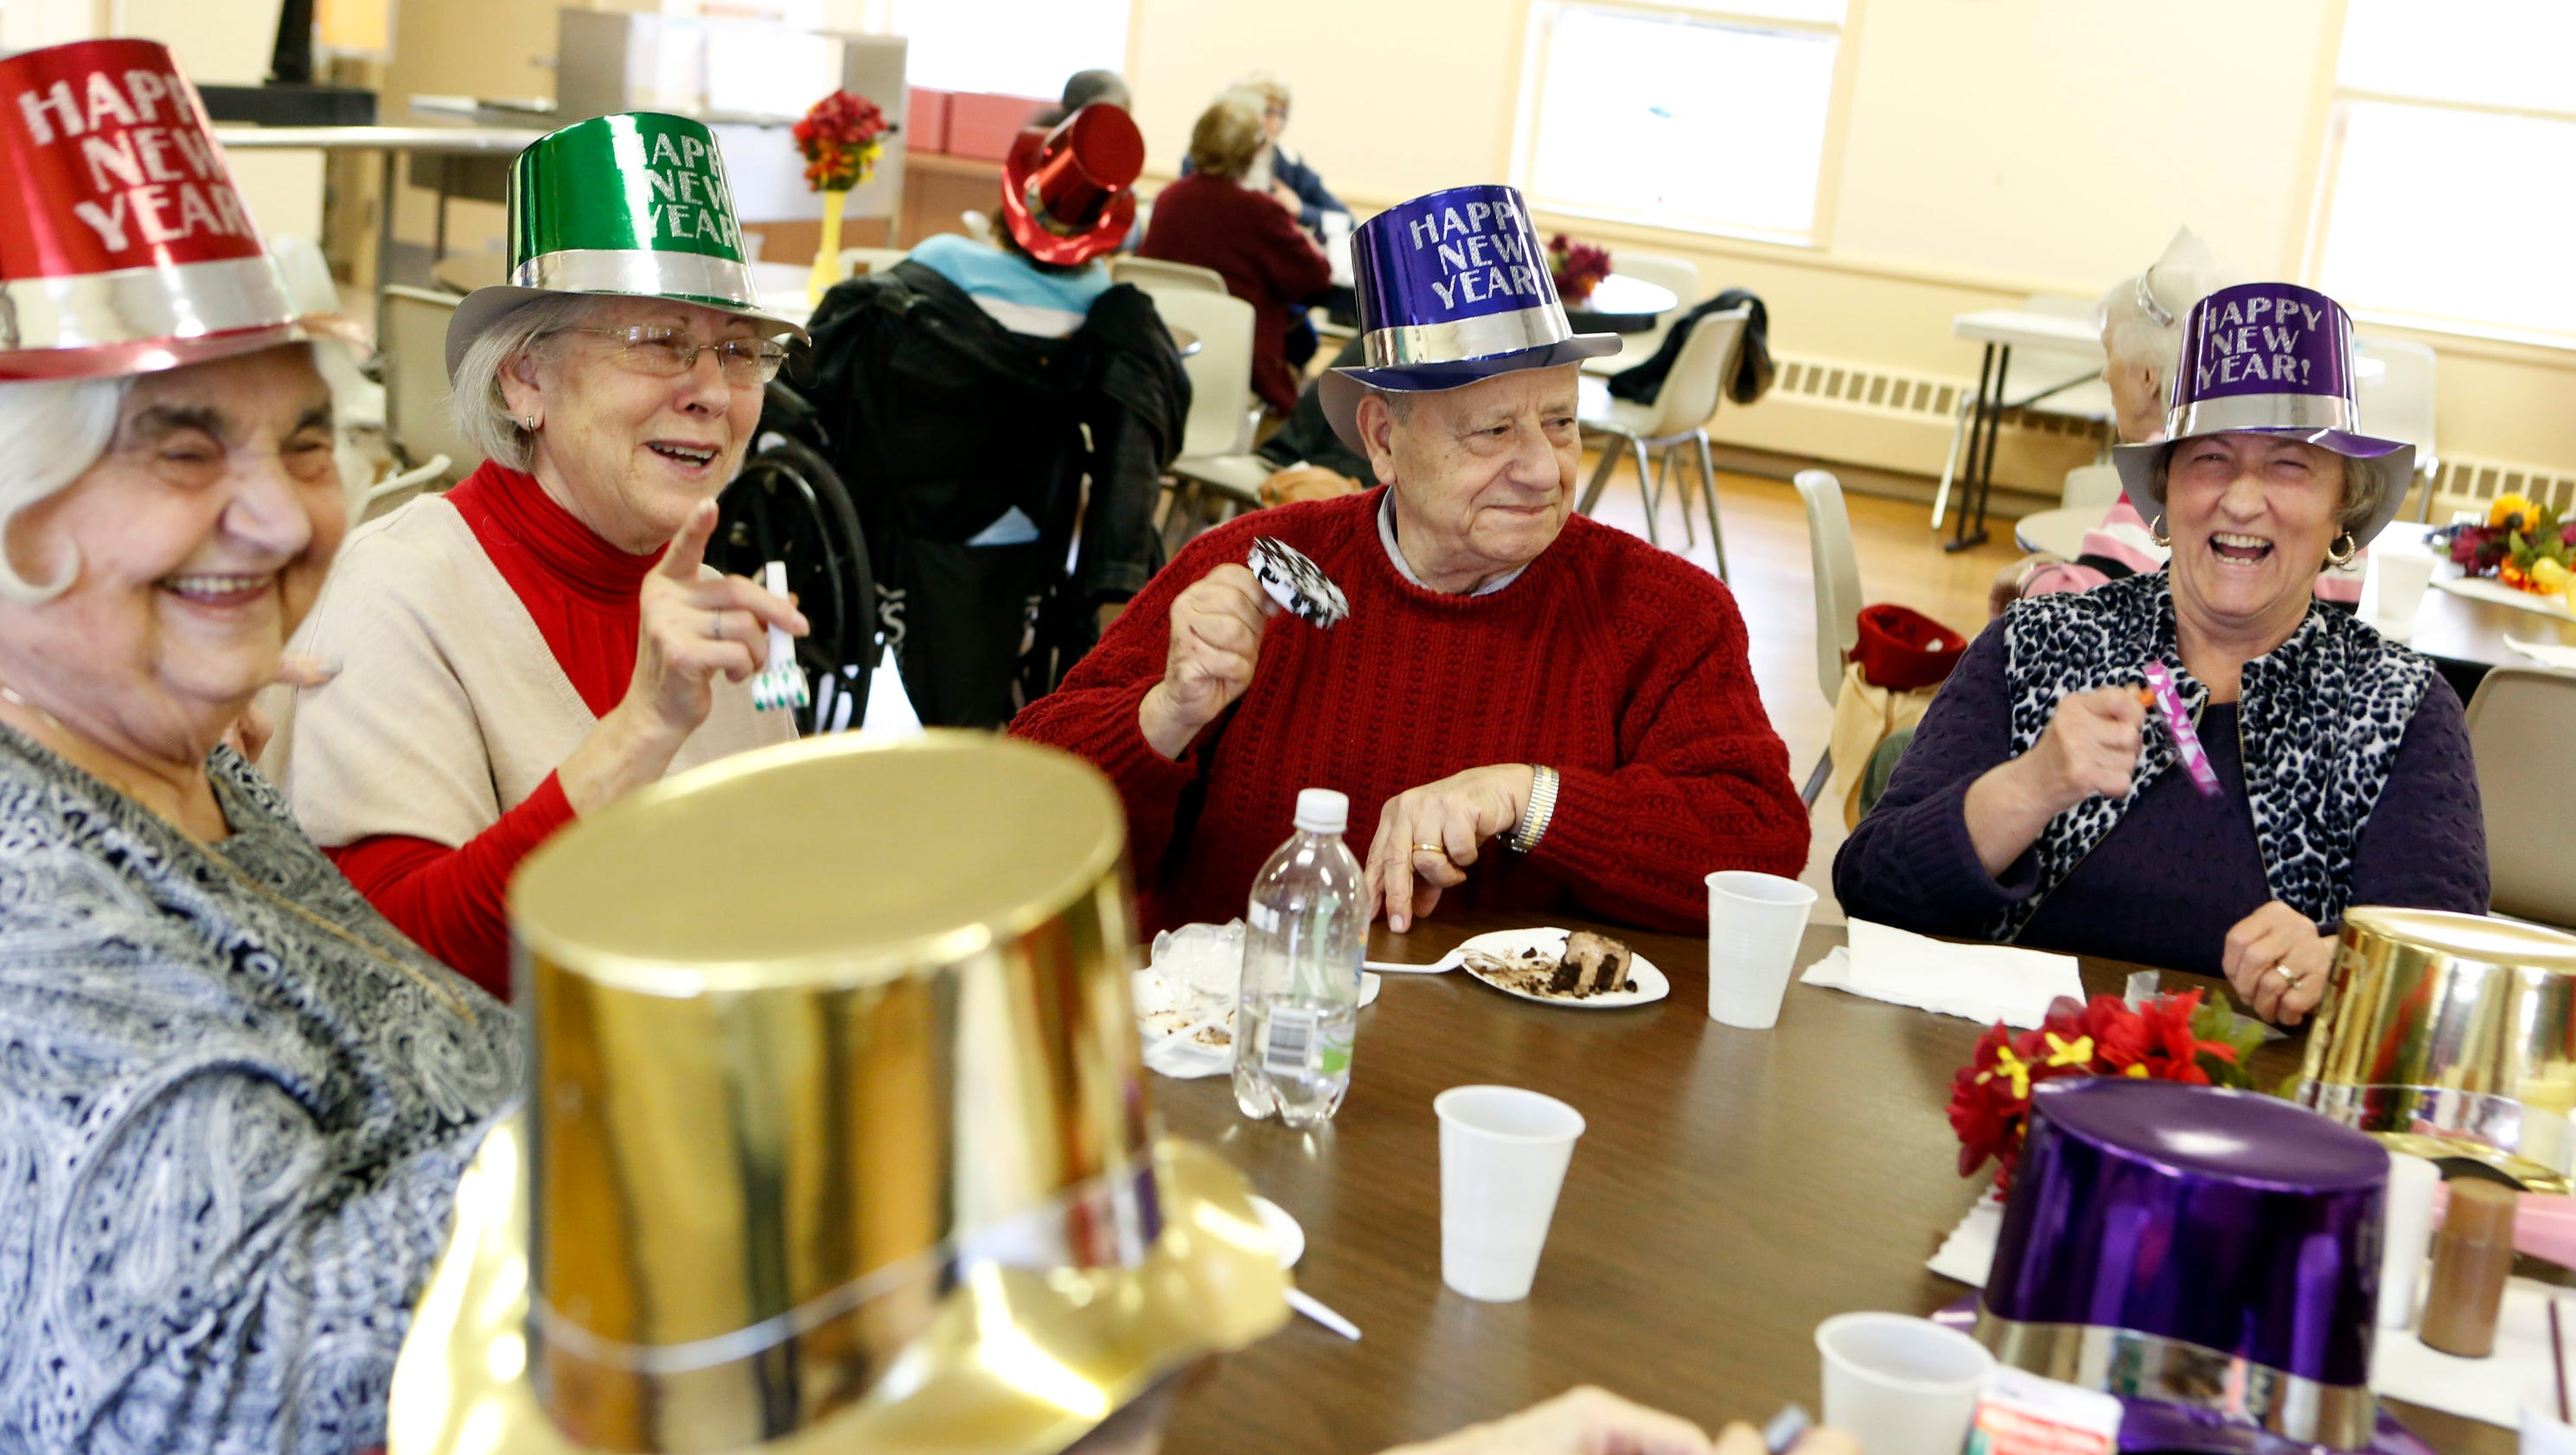 Senior citizens ring in the new year in Larchmont